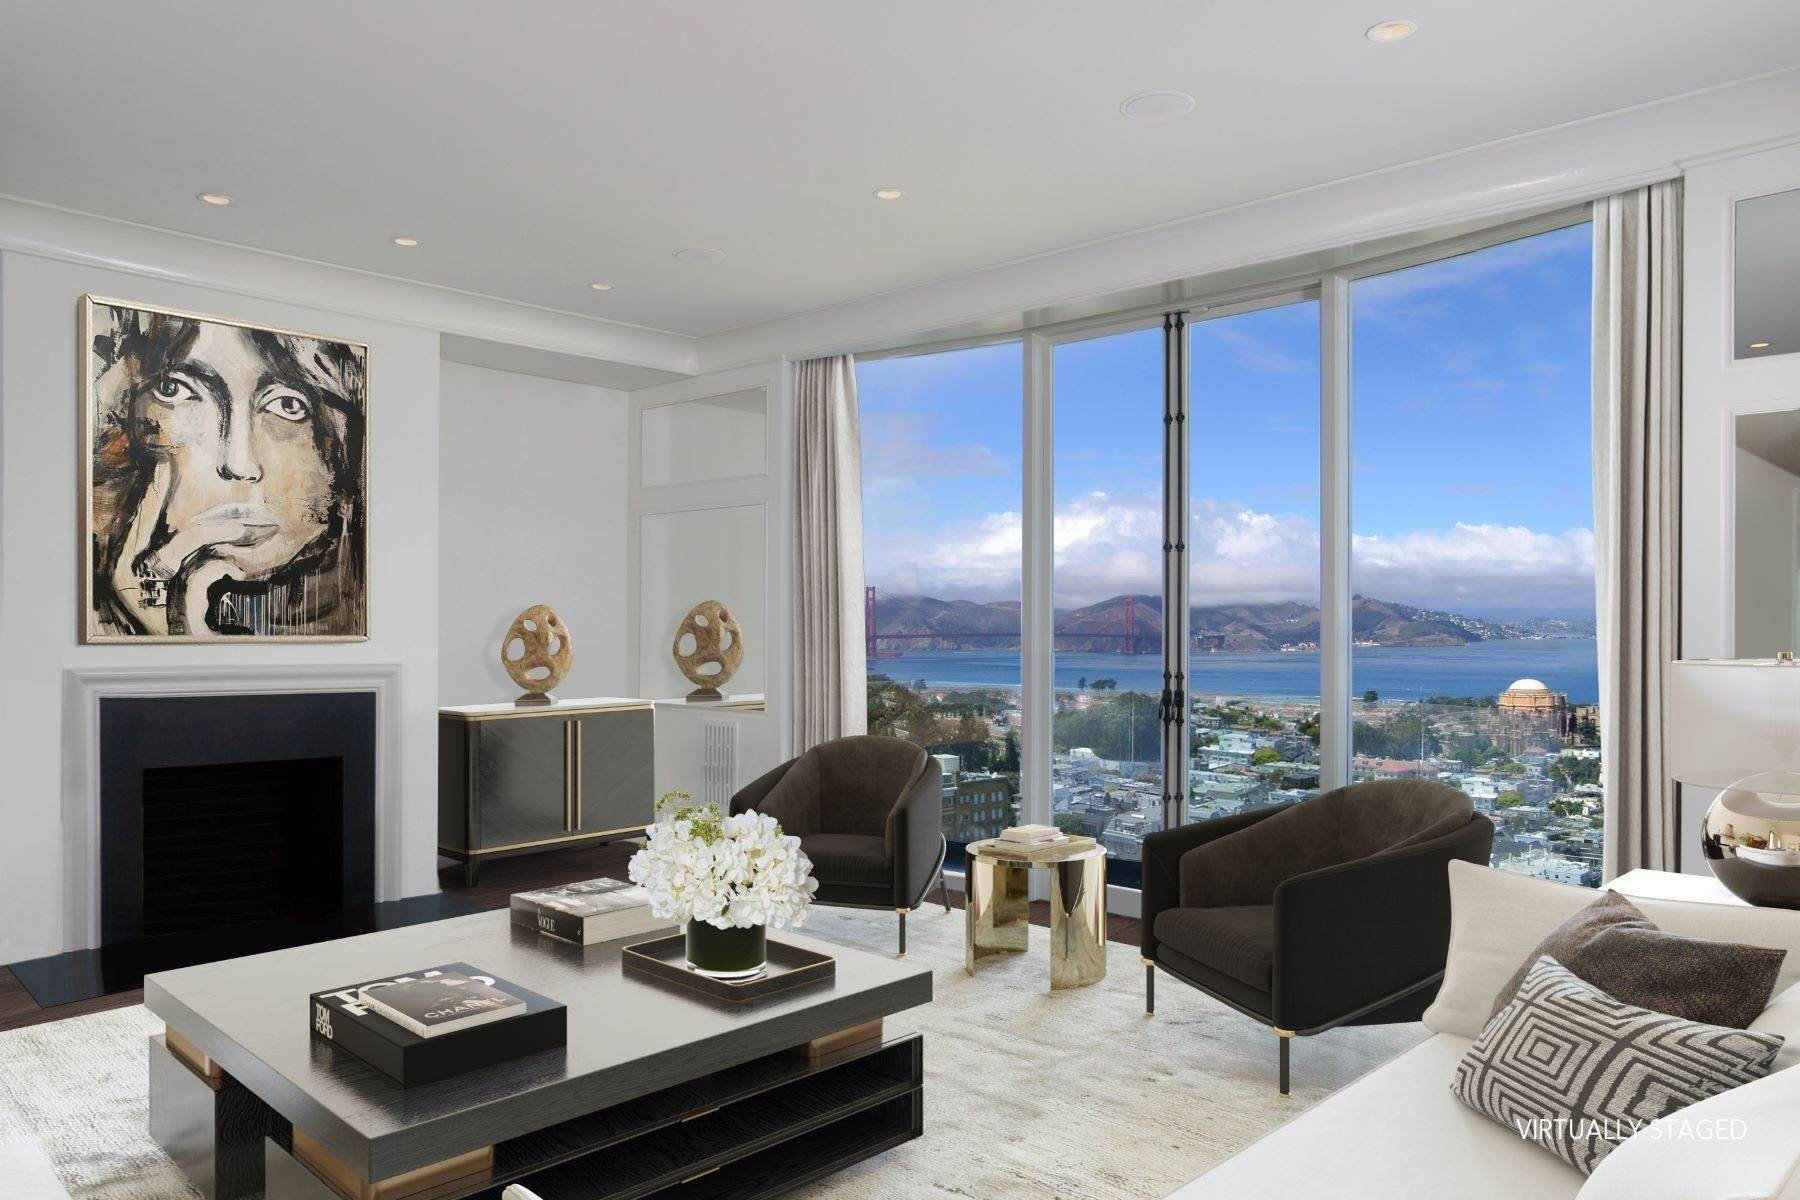 Property for Sale at Elegant Gold Coast Residence 2780 Broadway St San Francisco, California 94115 United States